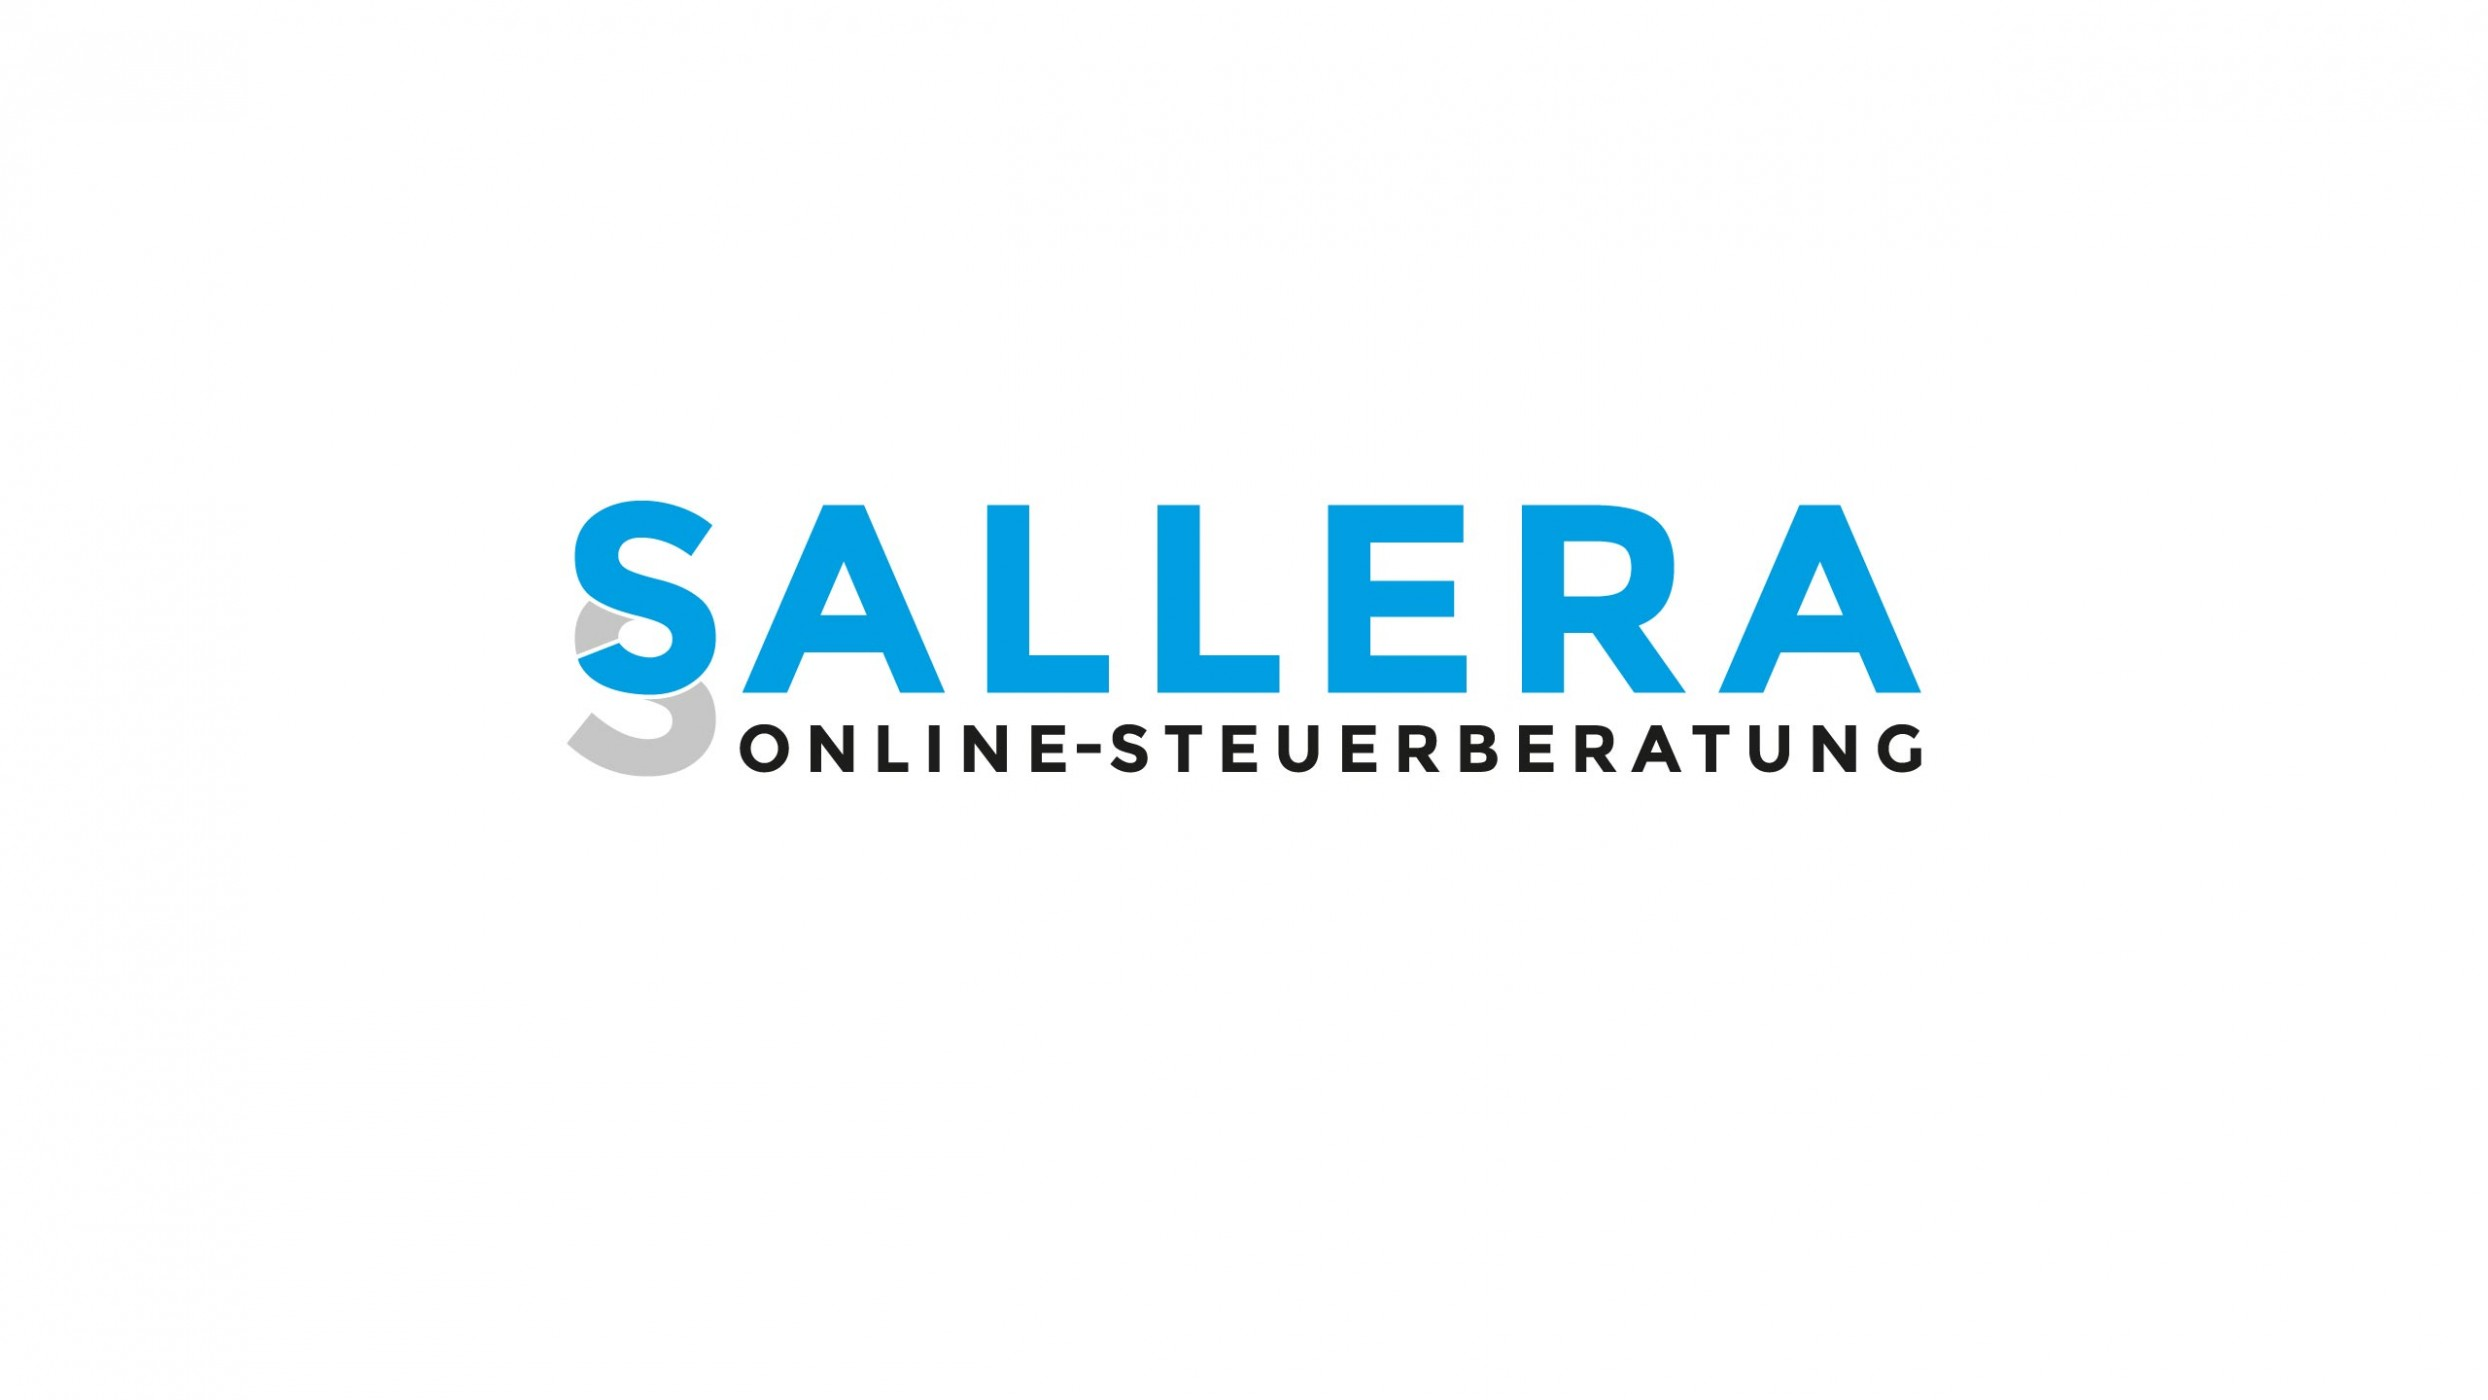 sallera-corporate-design-05